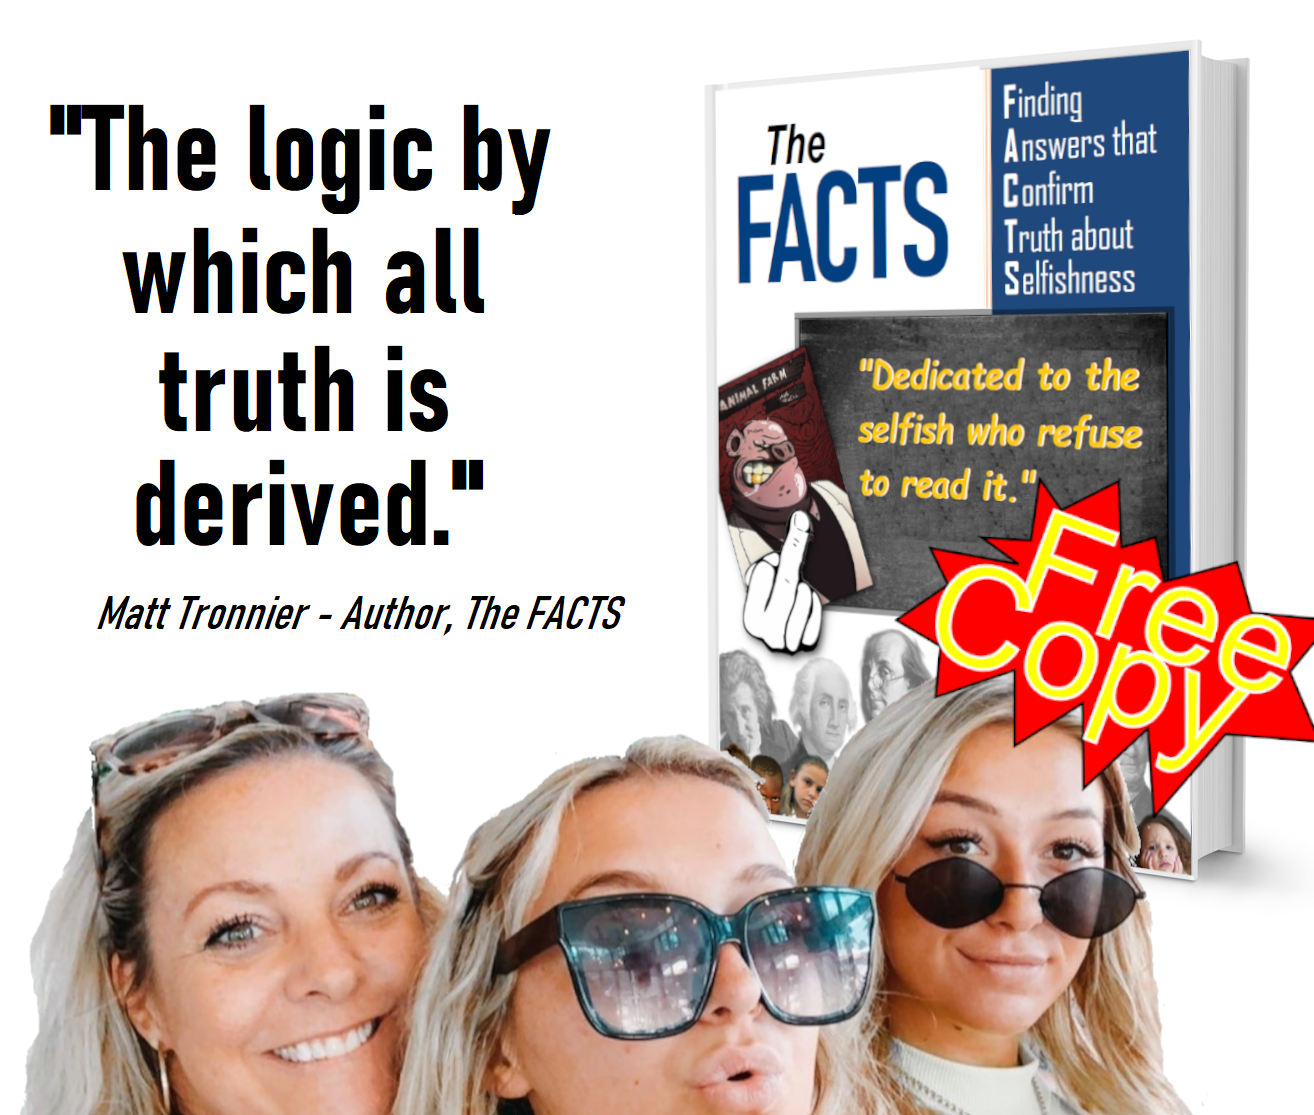 Book with girsl - logic by which FREE COPY